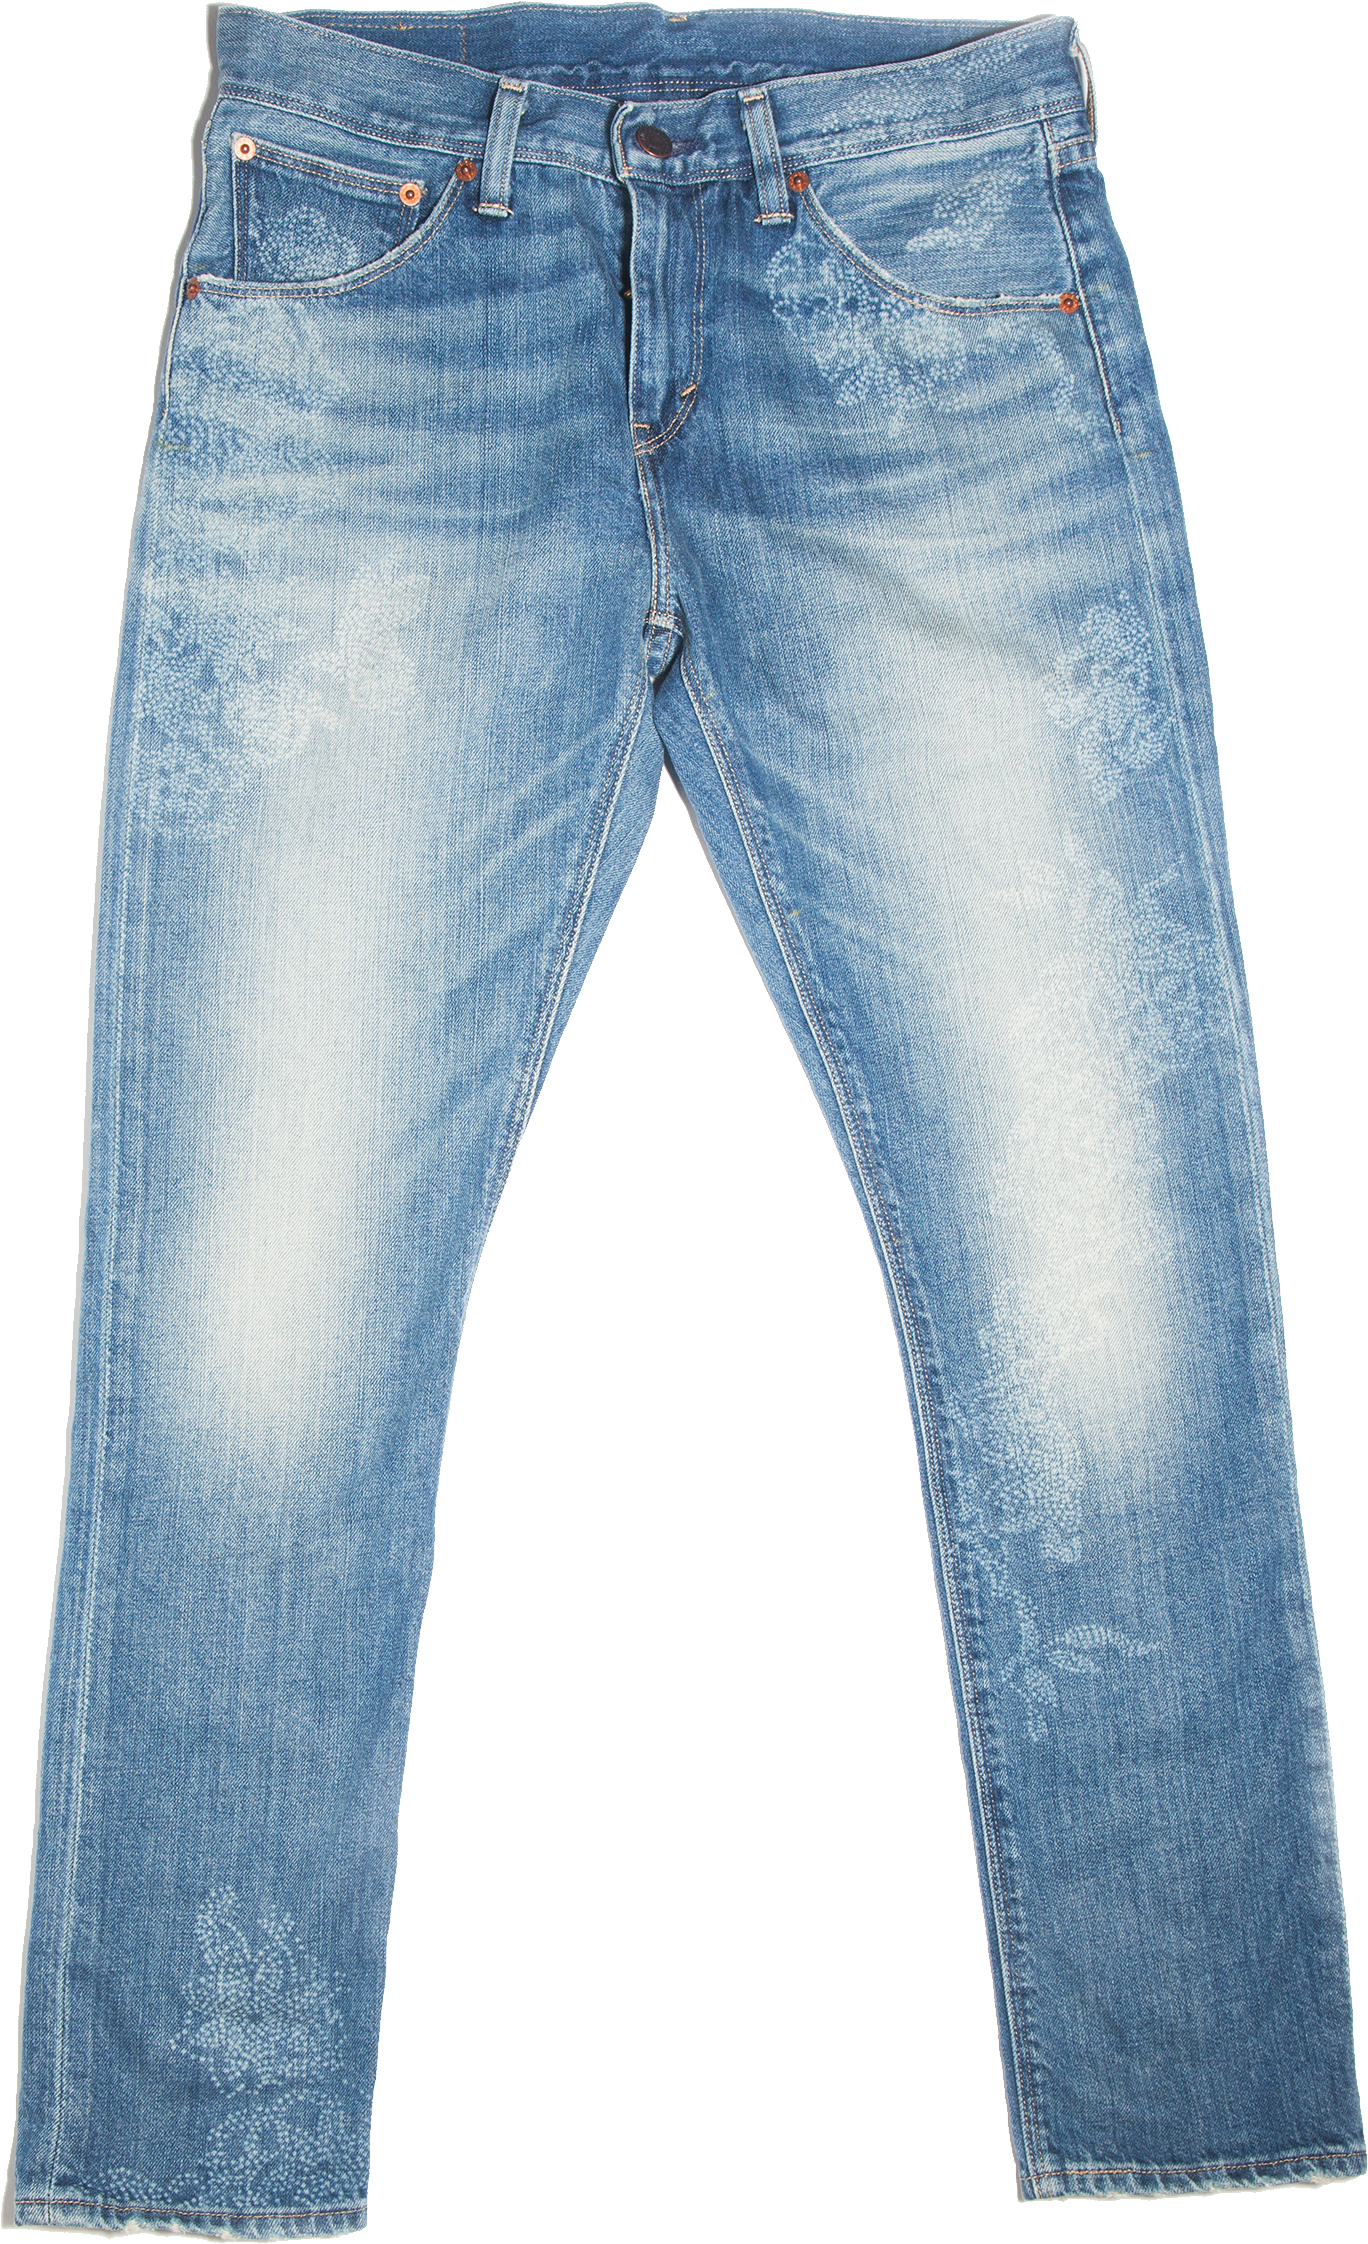 Jeans clipart #1, Download drawings